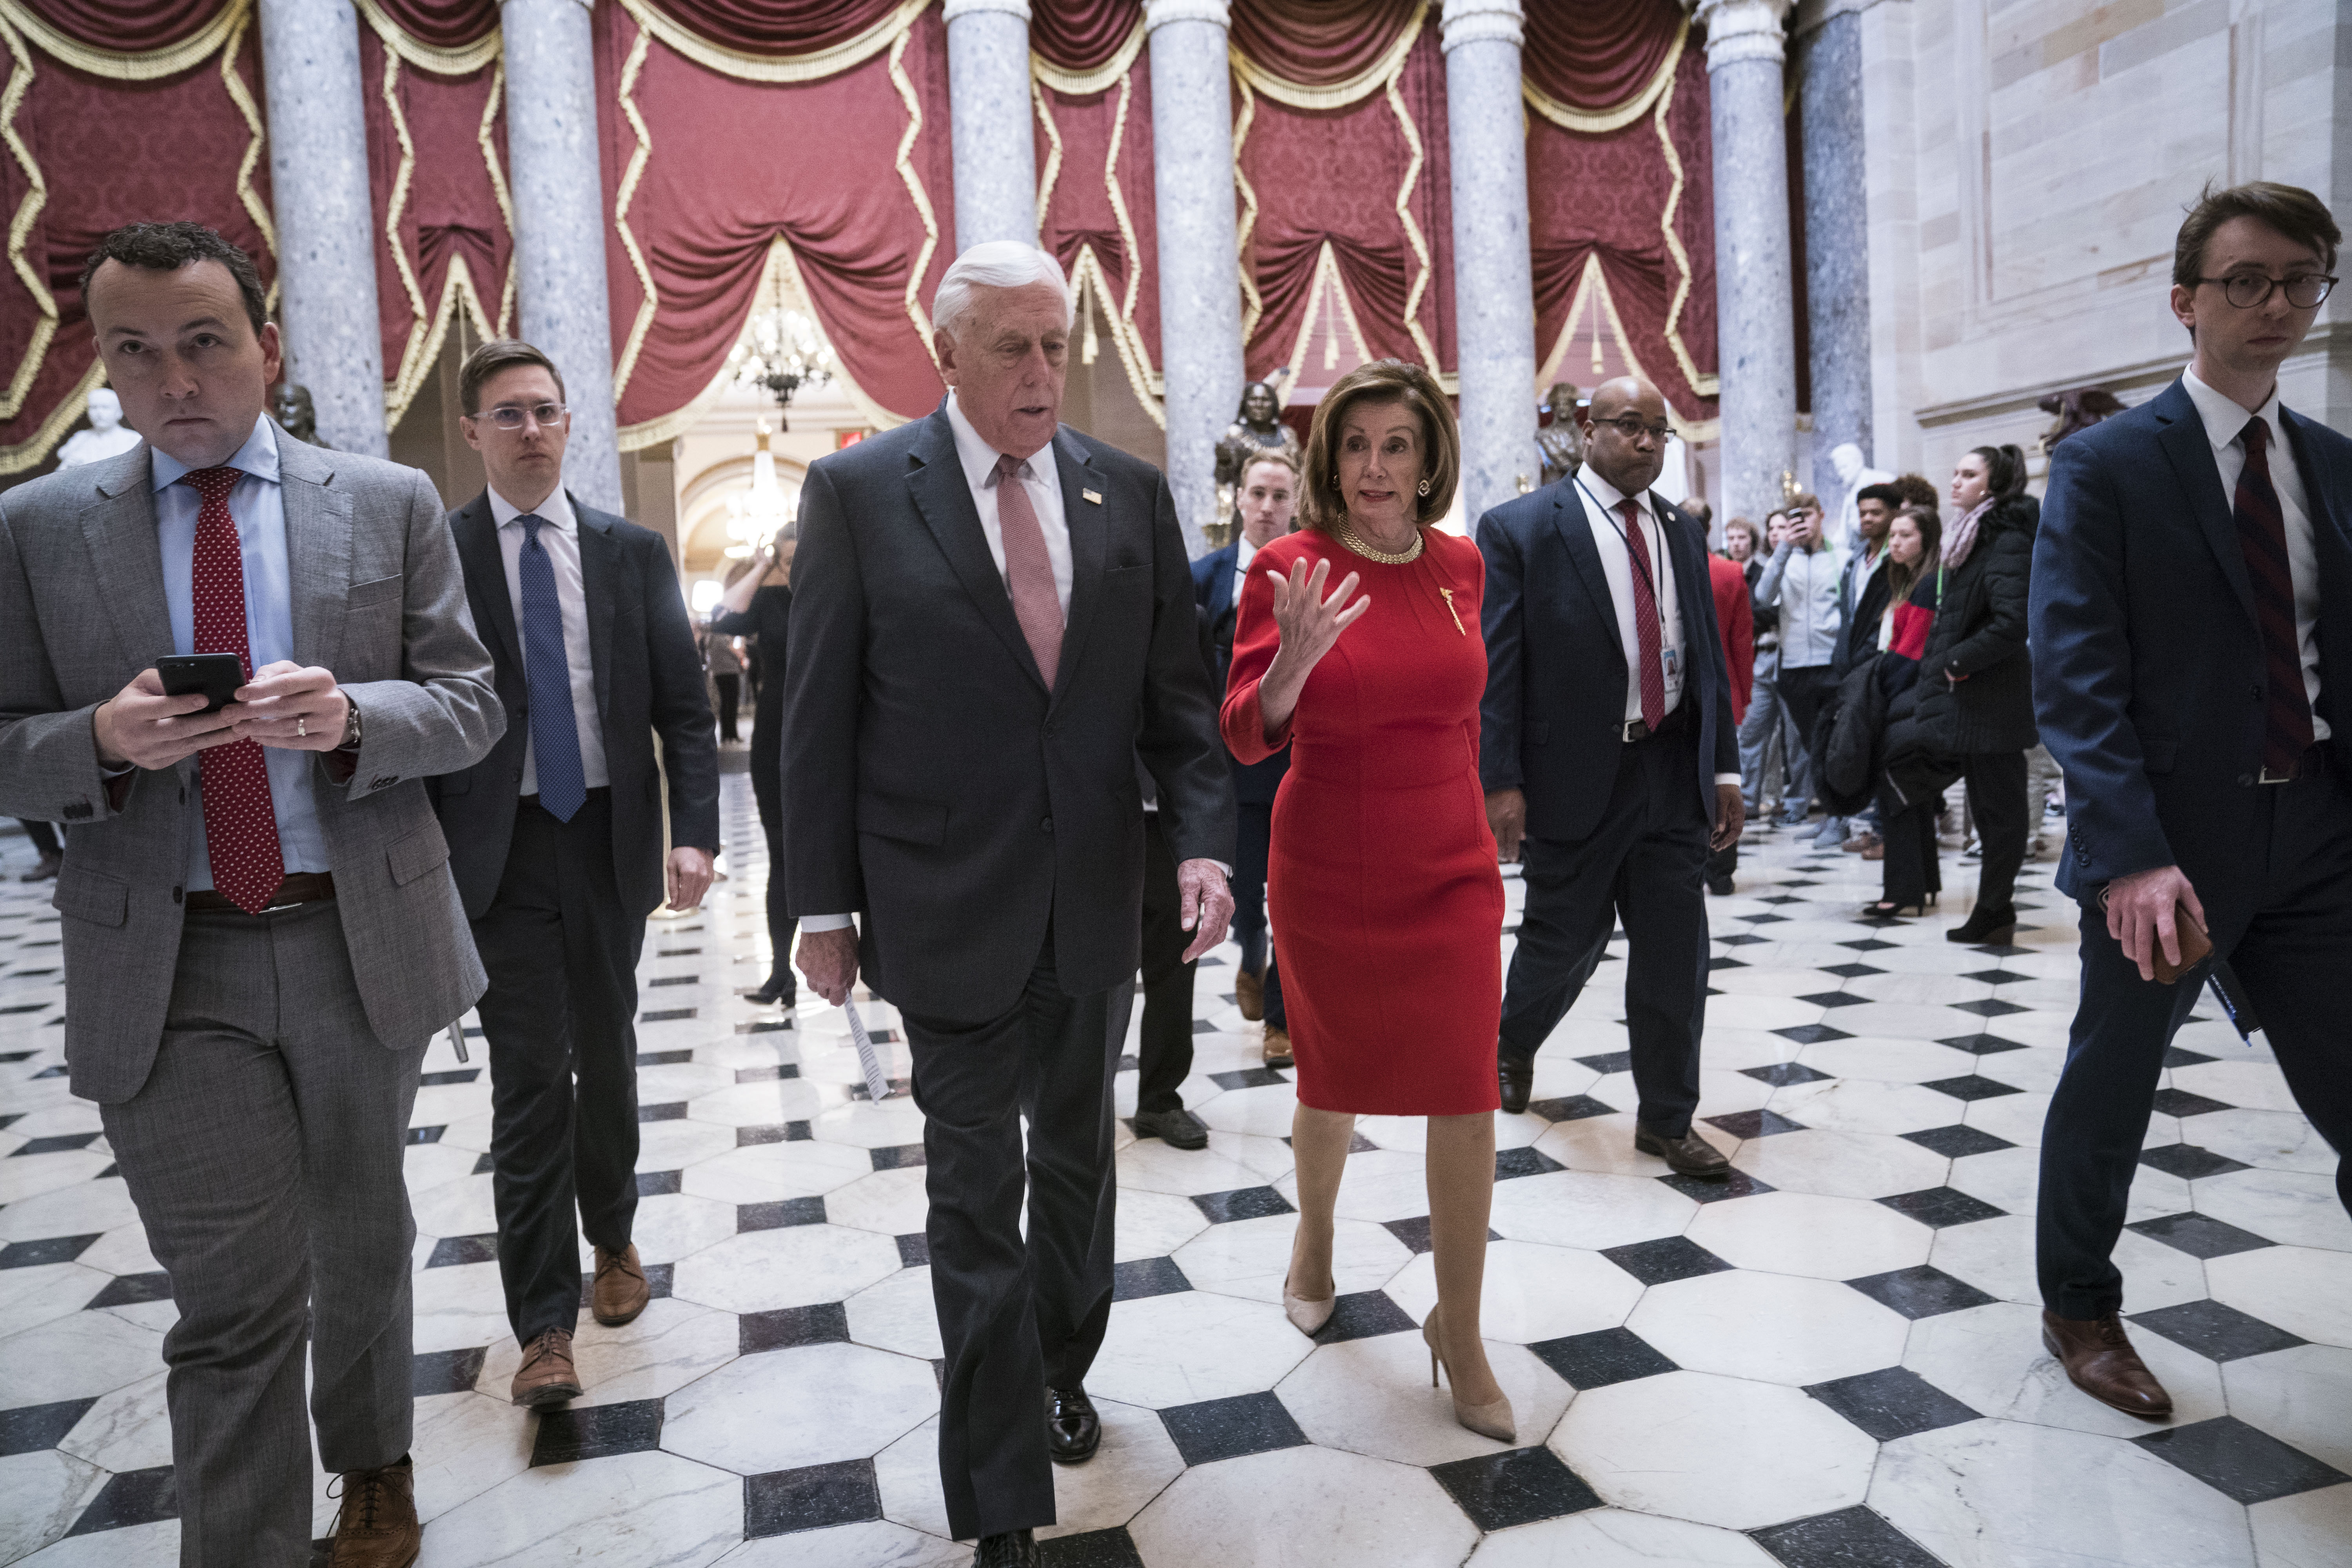 House Majority Leader Rep. Steny Hoyer (D-MD) and House Speaker Nancy Pelosi (D-CA) walk from the House floor where members debate the United States-Mexico-Canada Agreement (USMCA) to the speaker's office in the U.S. Capitol on December 19, 2019. (Sarah Silbiger/Getty Images)